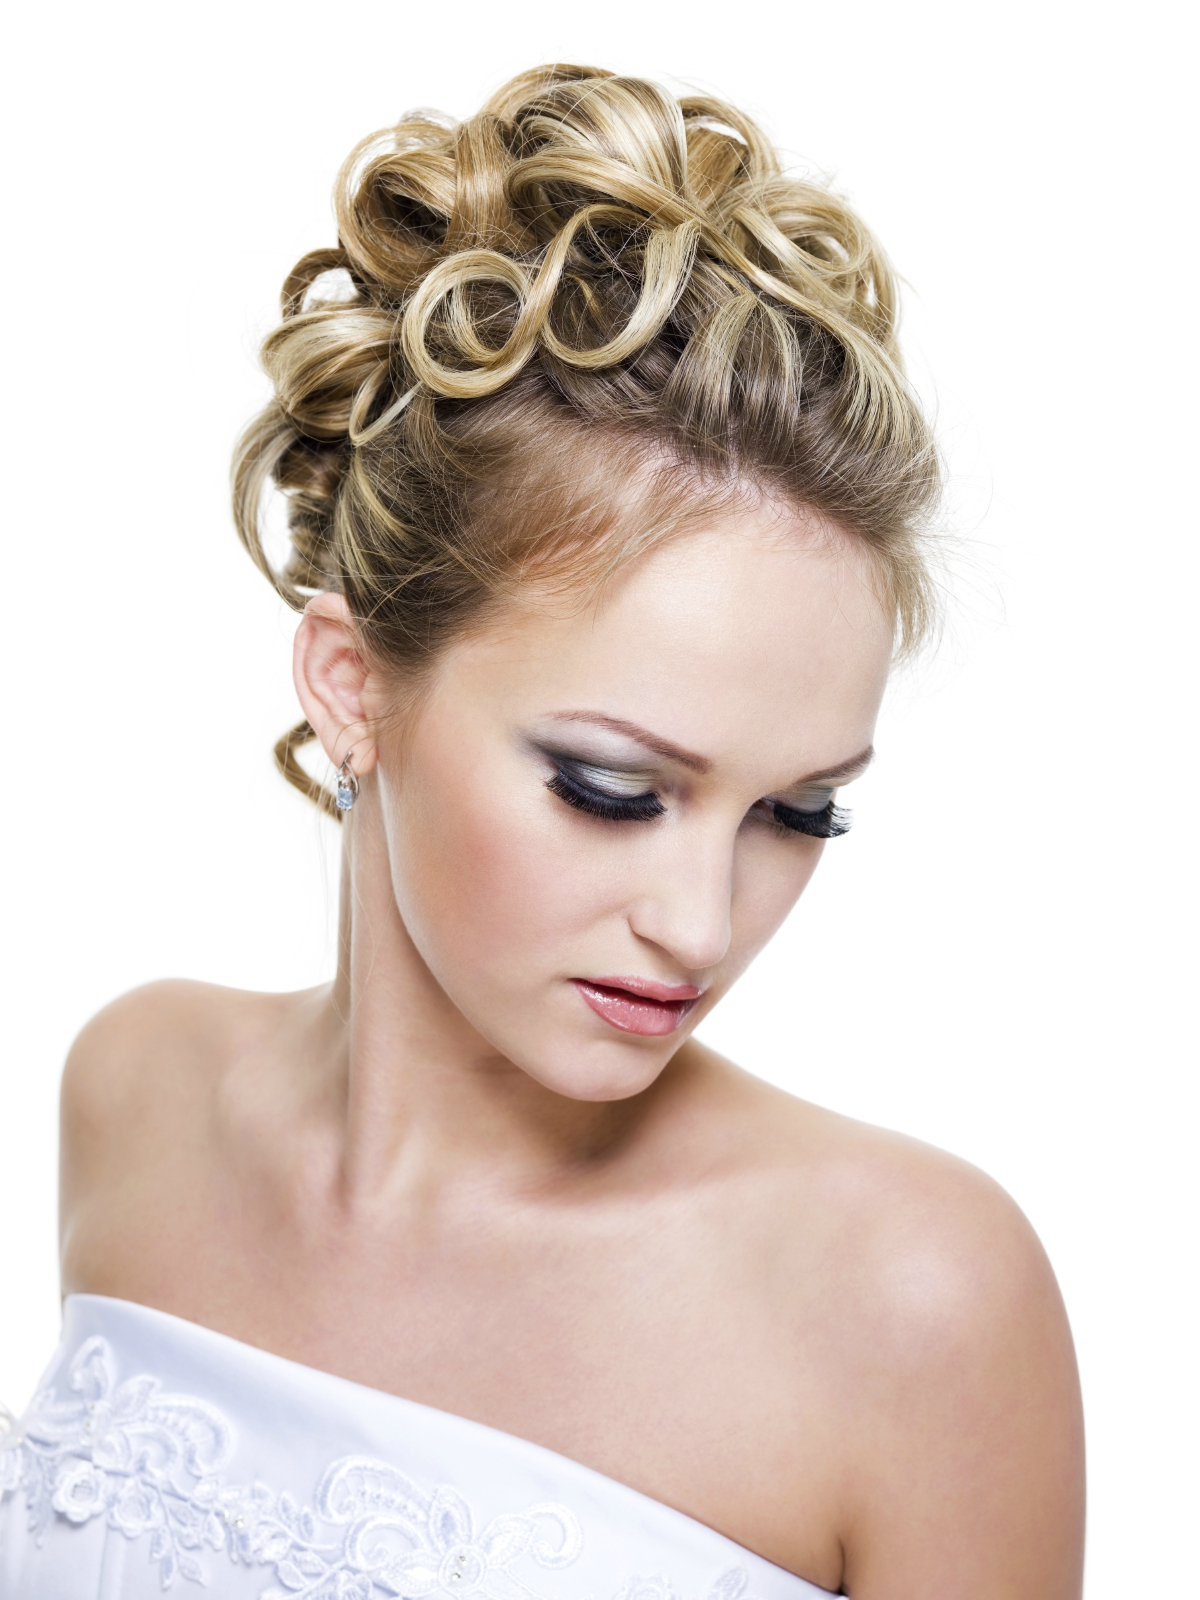 maquillage professionnel - Maquilleuse Professionnelle Mariage